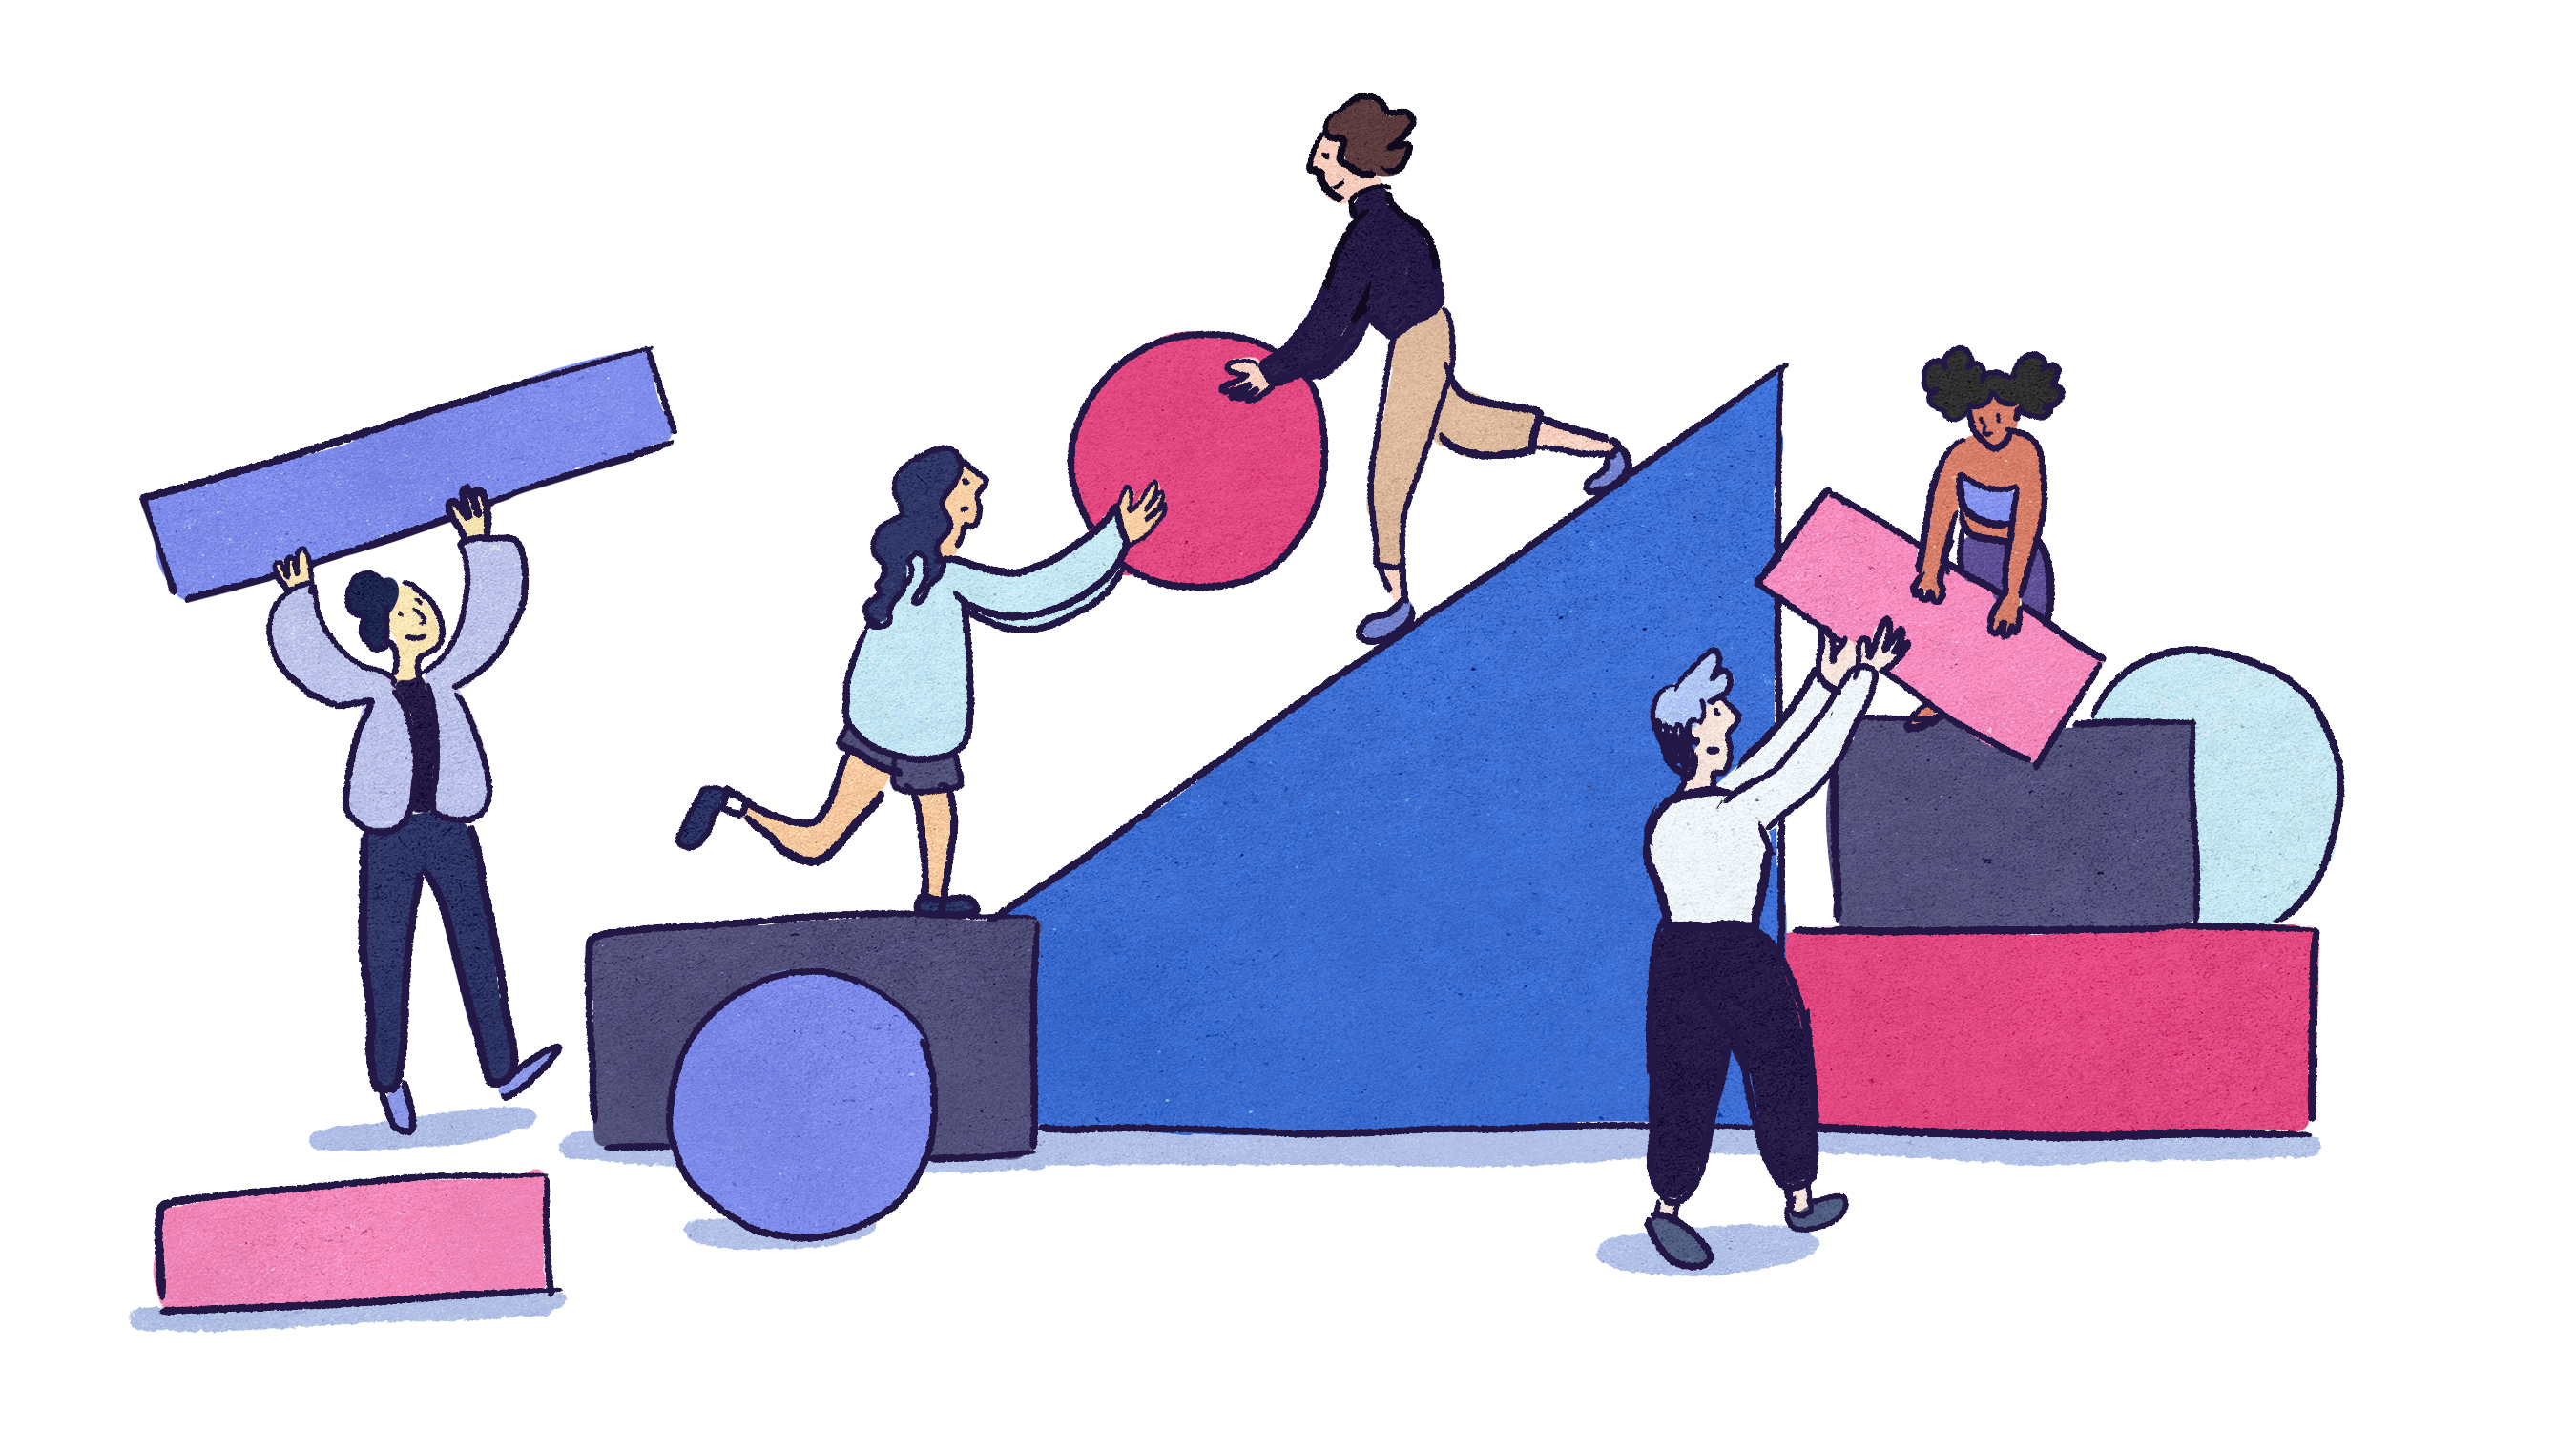 Illustration by Marina Li of five college students working together with giant colorful building blocks